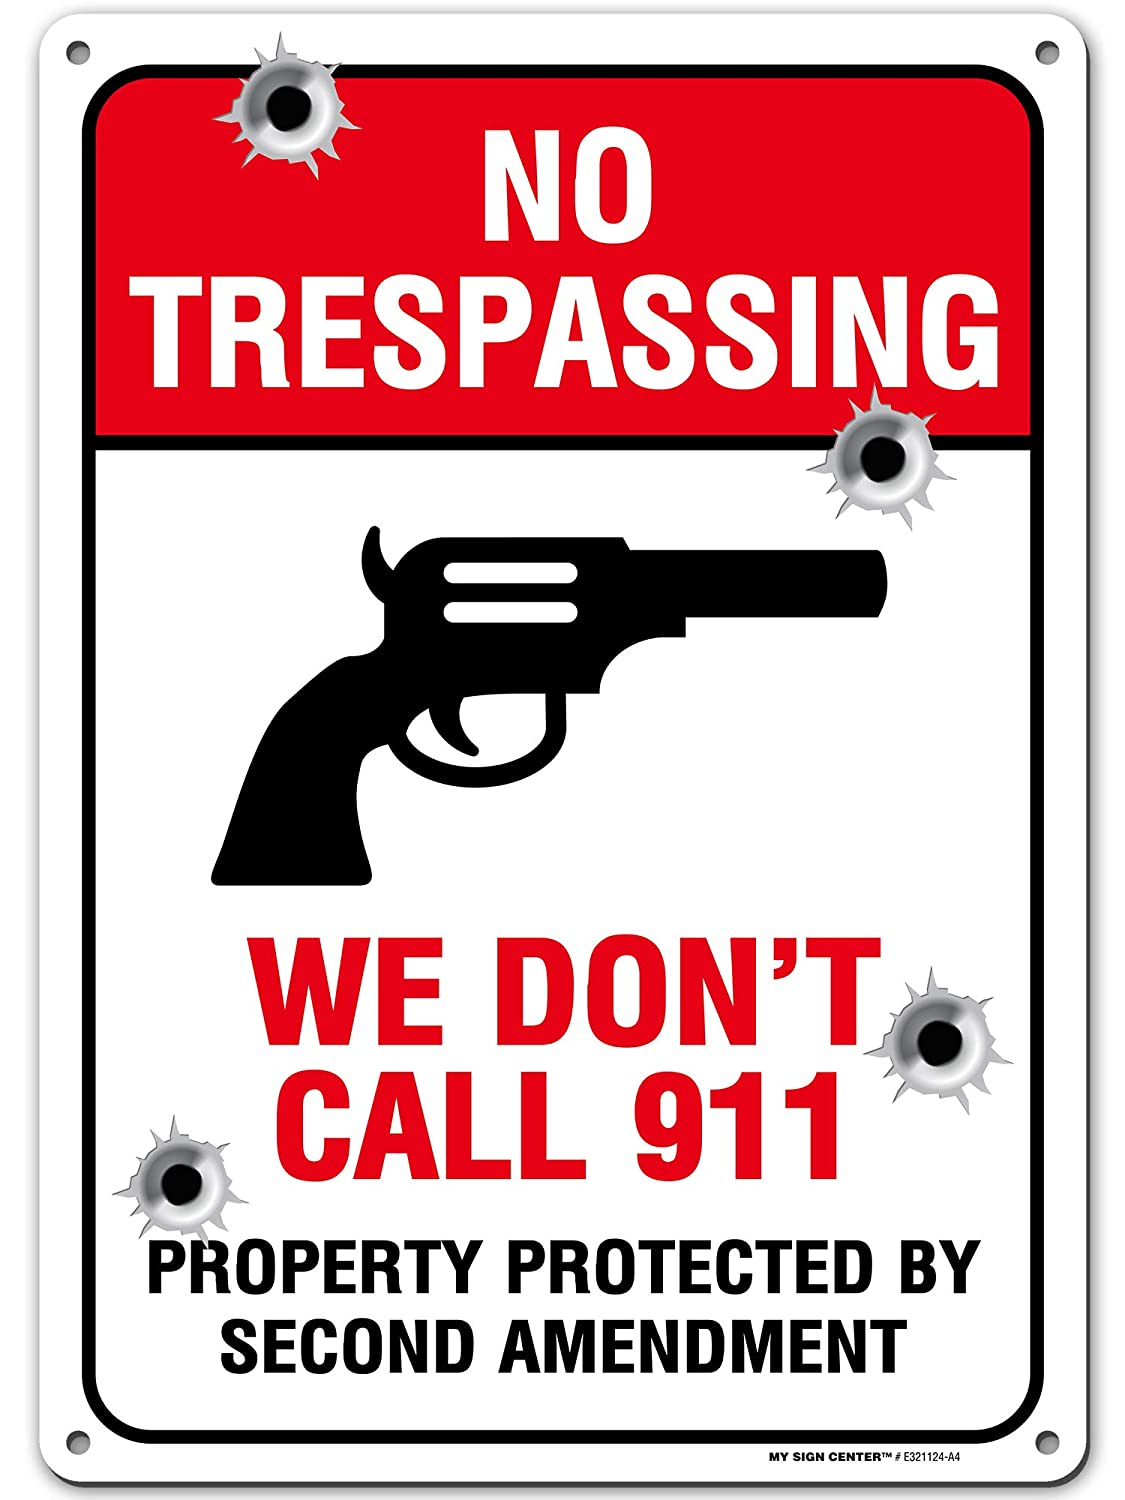 """Funny We Don't Call 911, No Trespassing Protected by 2nd Amendment Sign, 10"""" x 14"""" Industrial Grade Aluminum, Easy Mounting, Rust-Free/Fade Resistance, Indoor/Outdoor, USA Made by MY SIGN CENTER"""